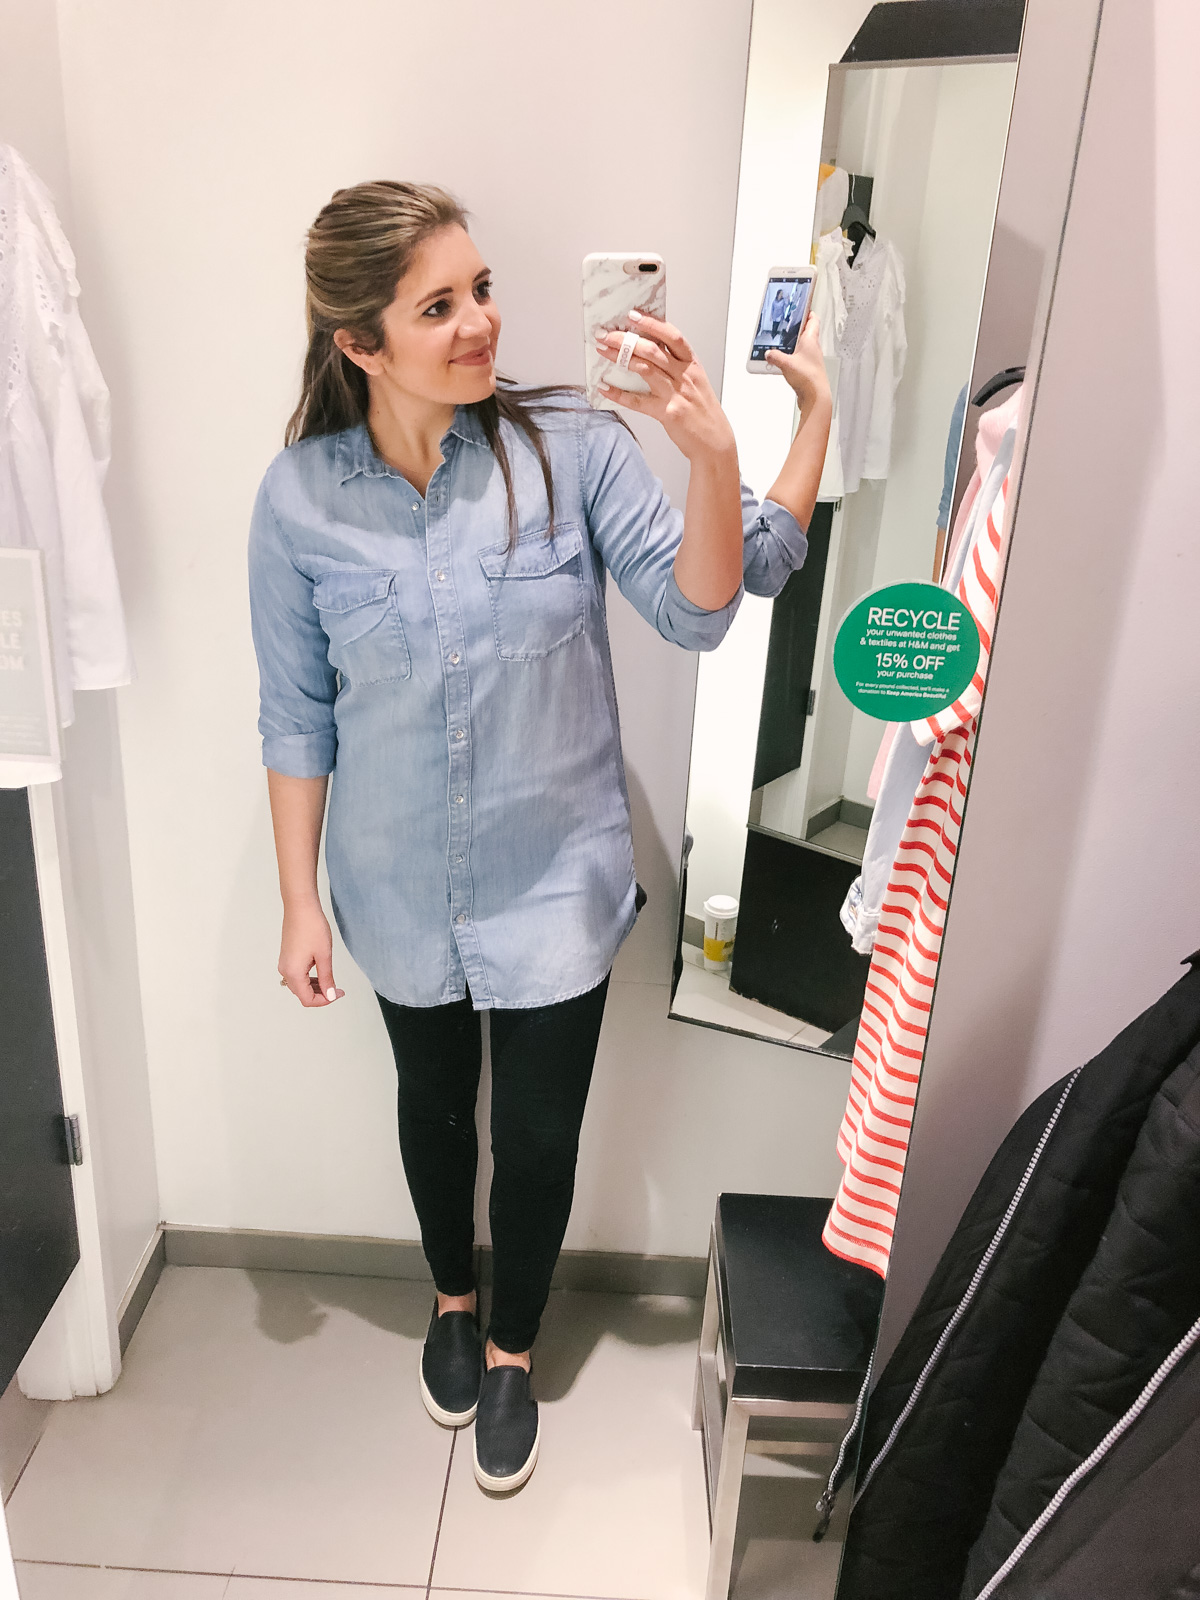 H&M dressing room reviews - dressing room diaries H&M 2018 | See the full clothing try-on session at bylaurenm.com!